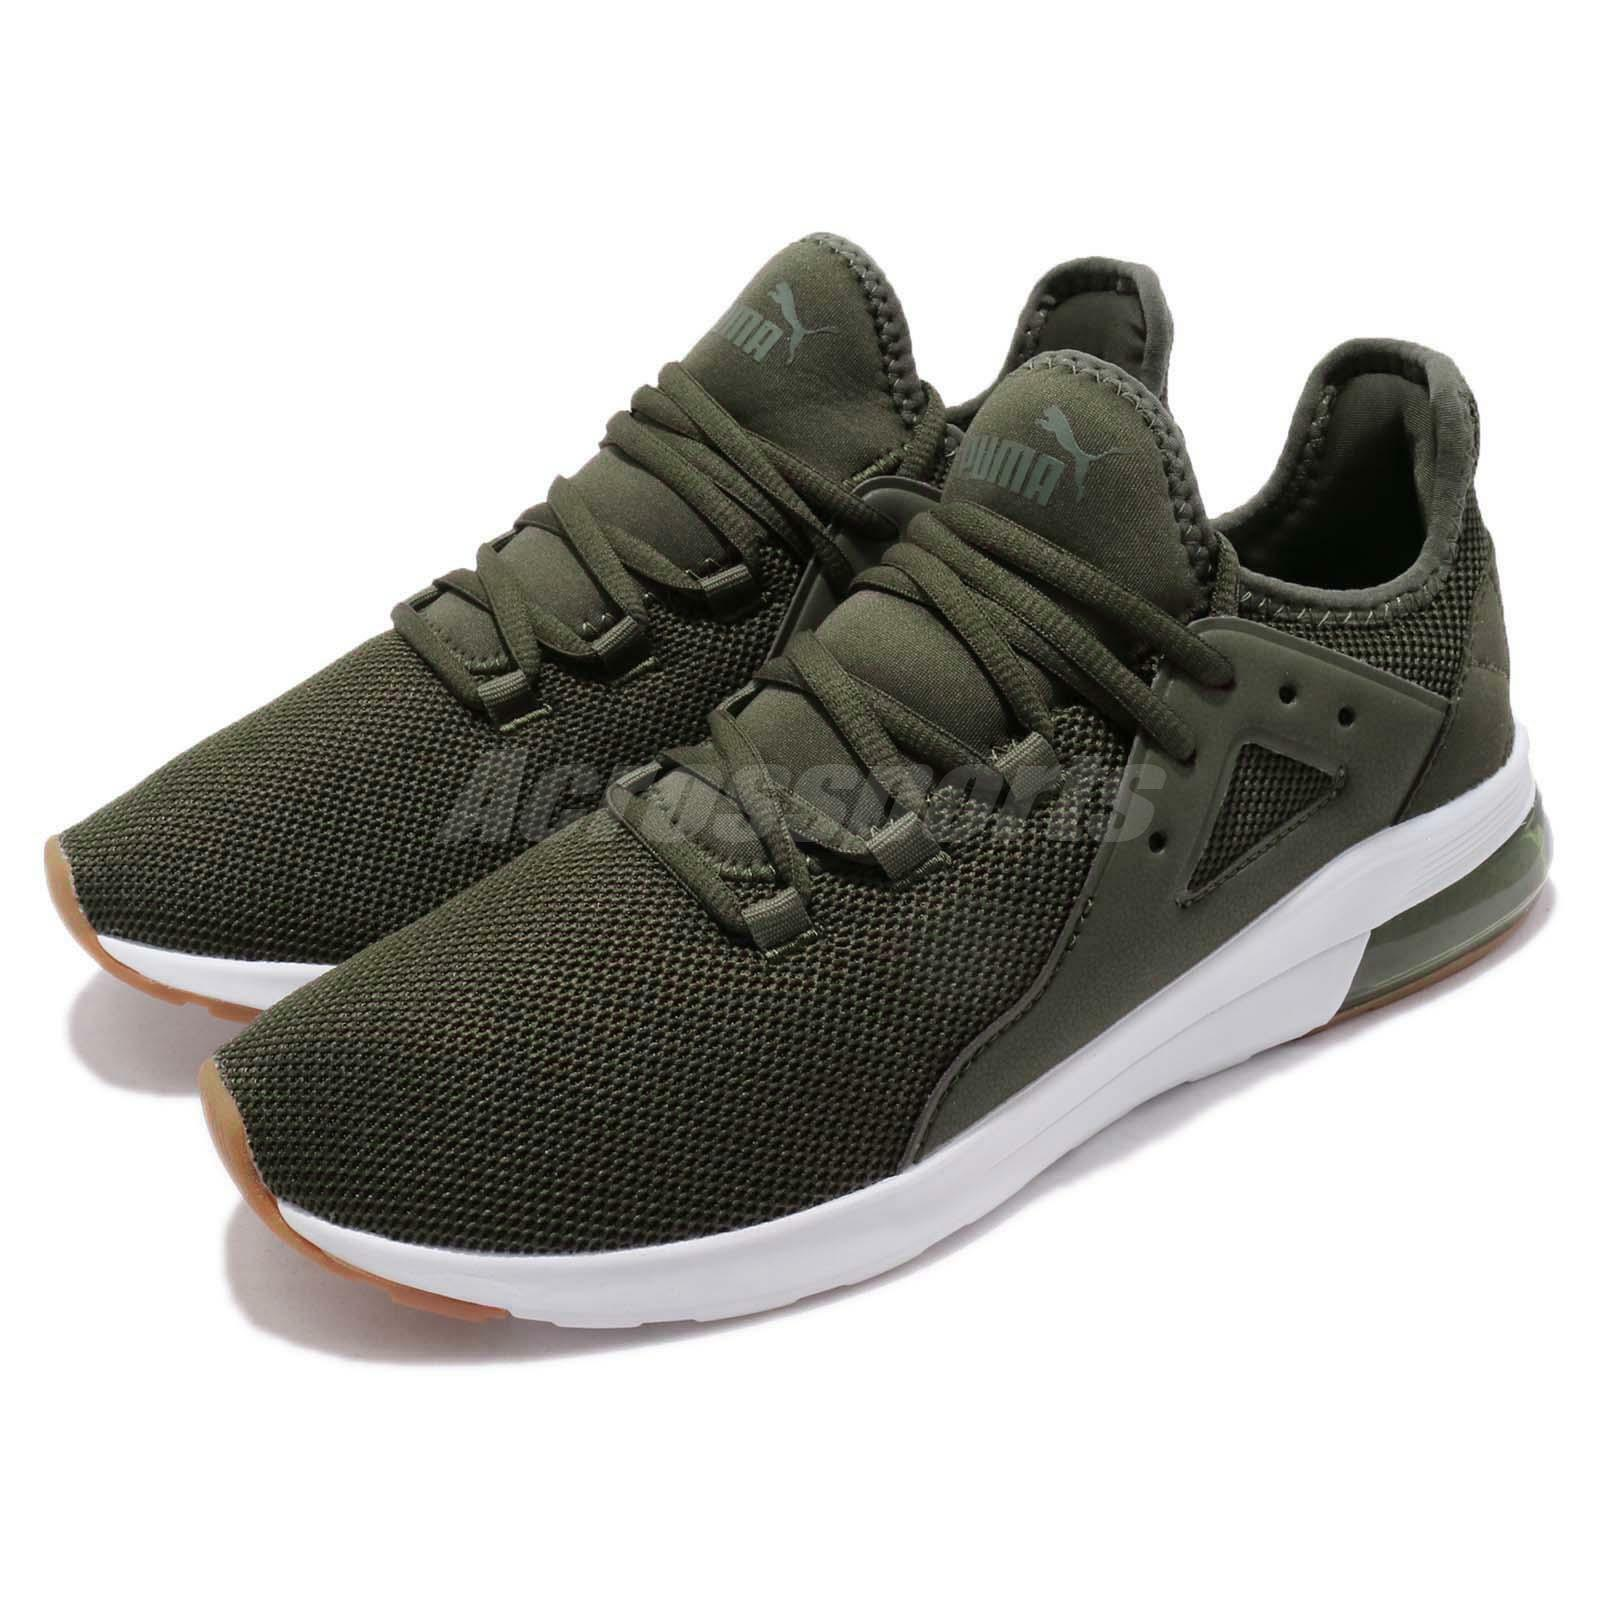 Puma Electron Casual Street Forest Night White Men Casual Electron Shoes Sneakers 367309-03 c7359f